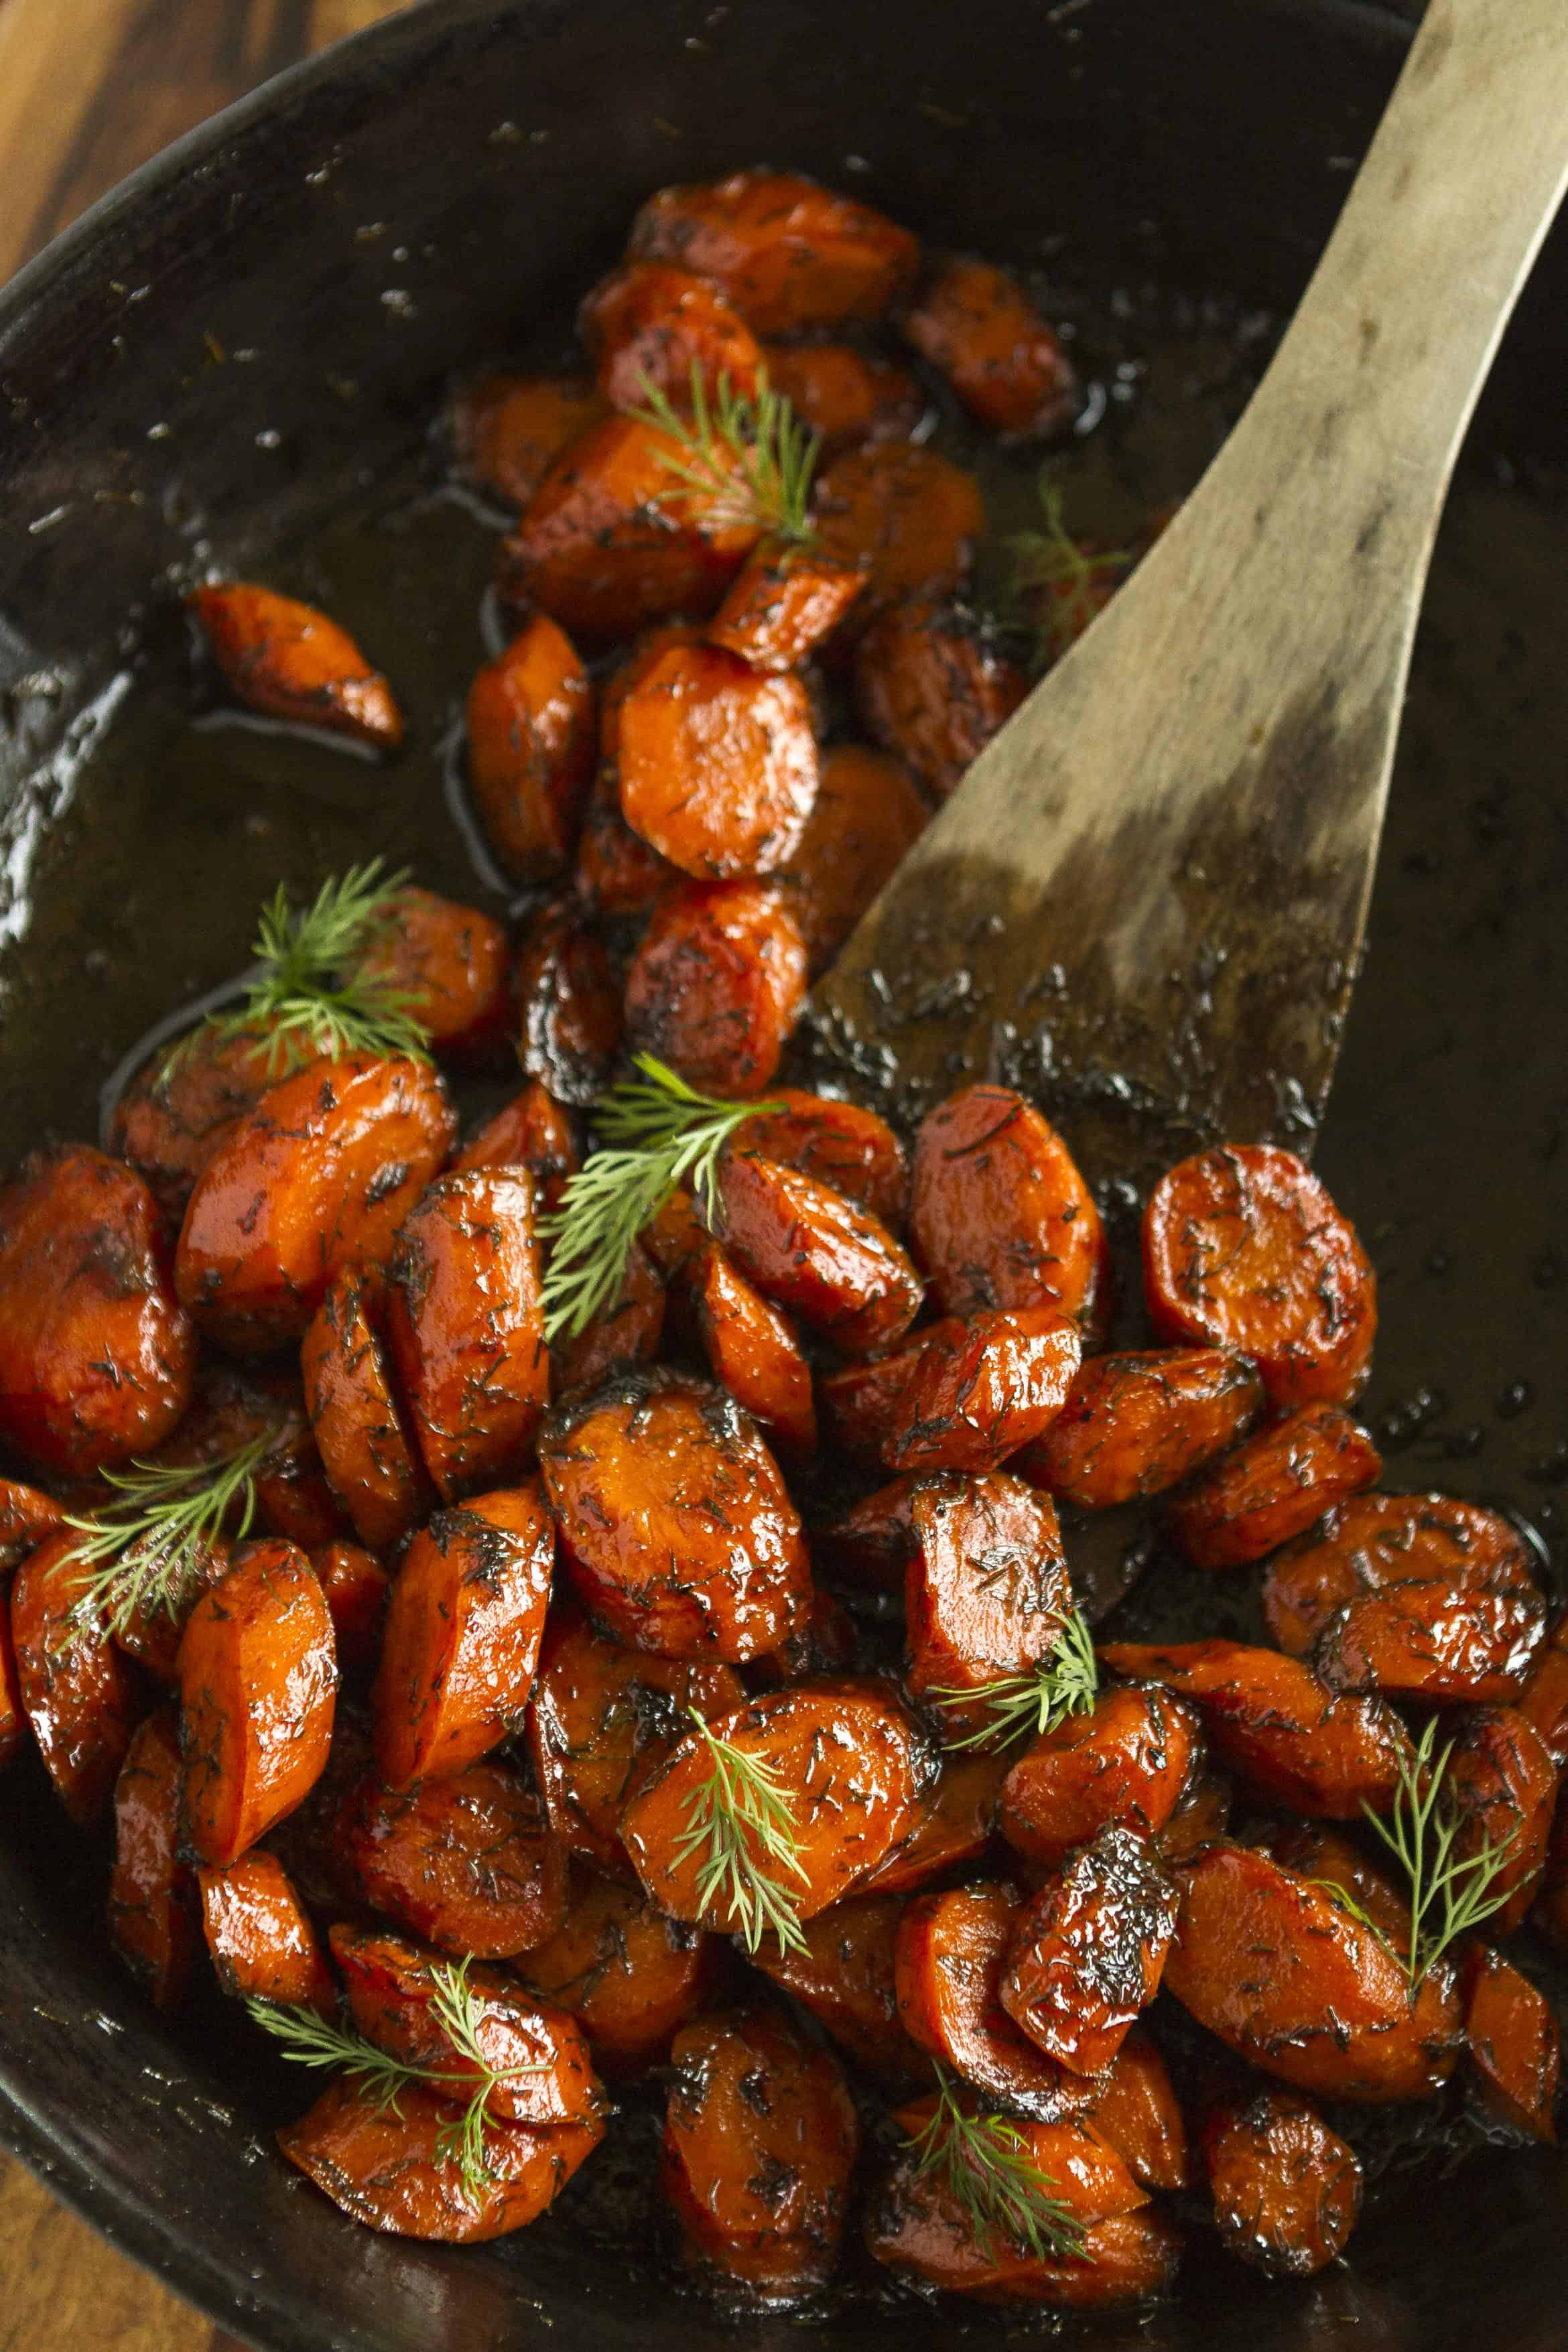 Roasted Carrots -- this roasted carrots recipe is sure to get the whole family to eat their veggies! Just 4 simple ingredients: brown butter, carrots (of course), honey and dried dill. Totally amazing!!! | via @unsophisticook on unsophisticook.com